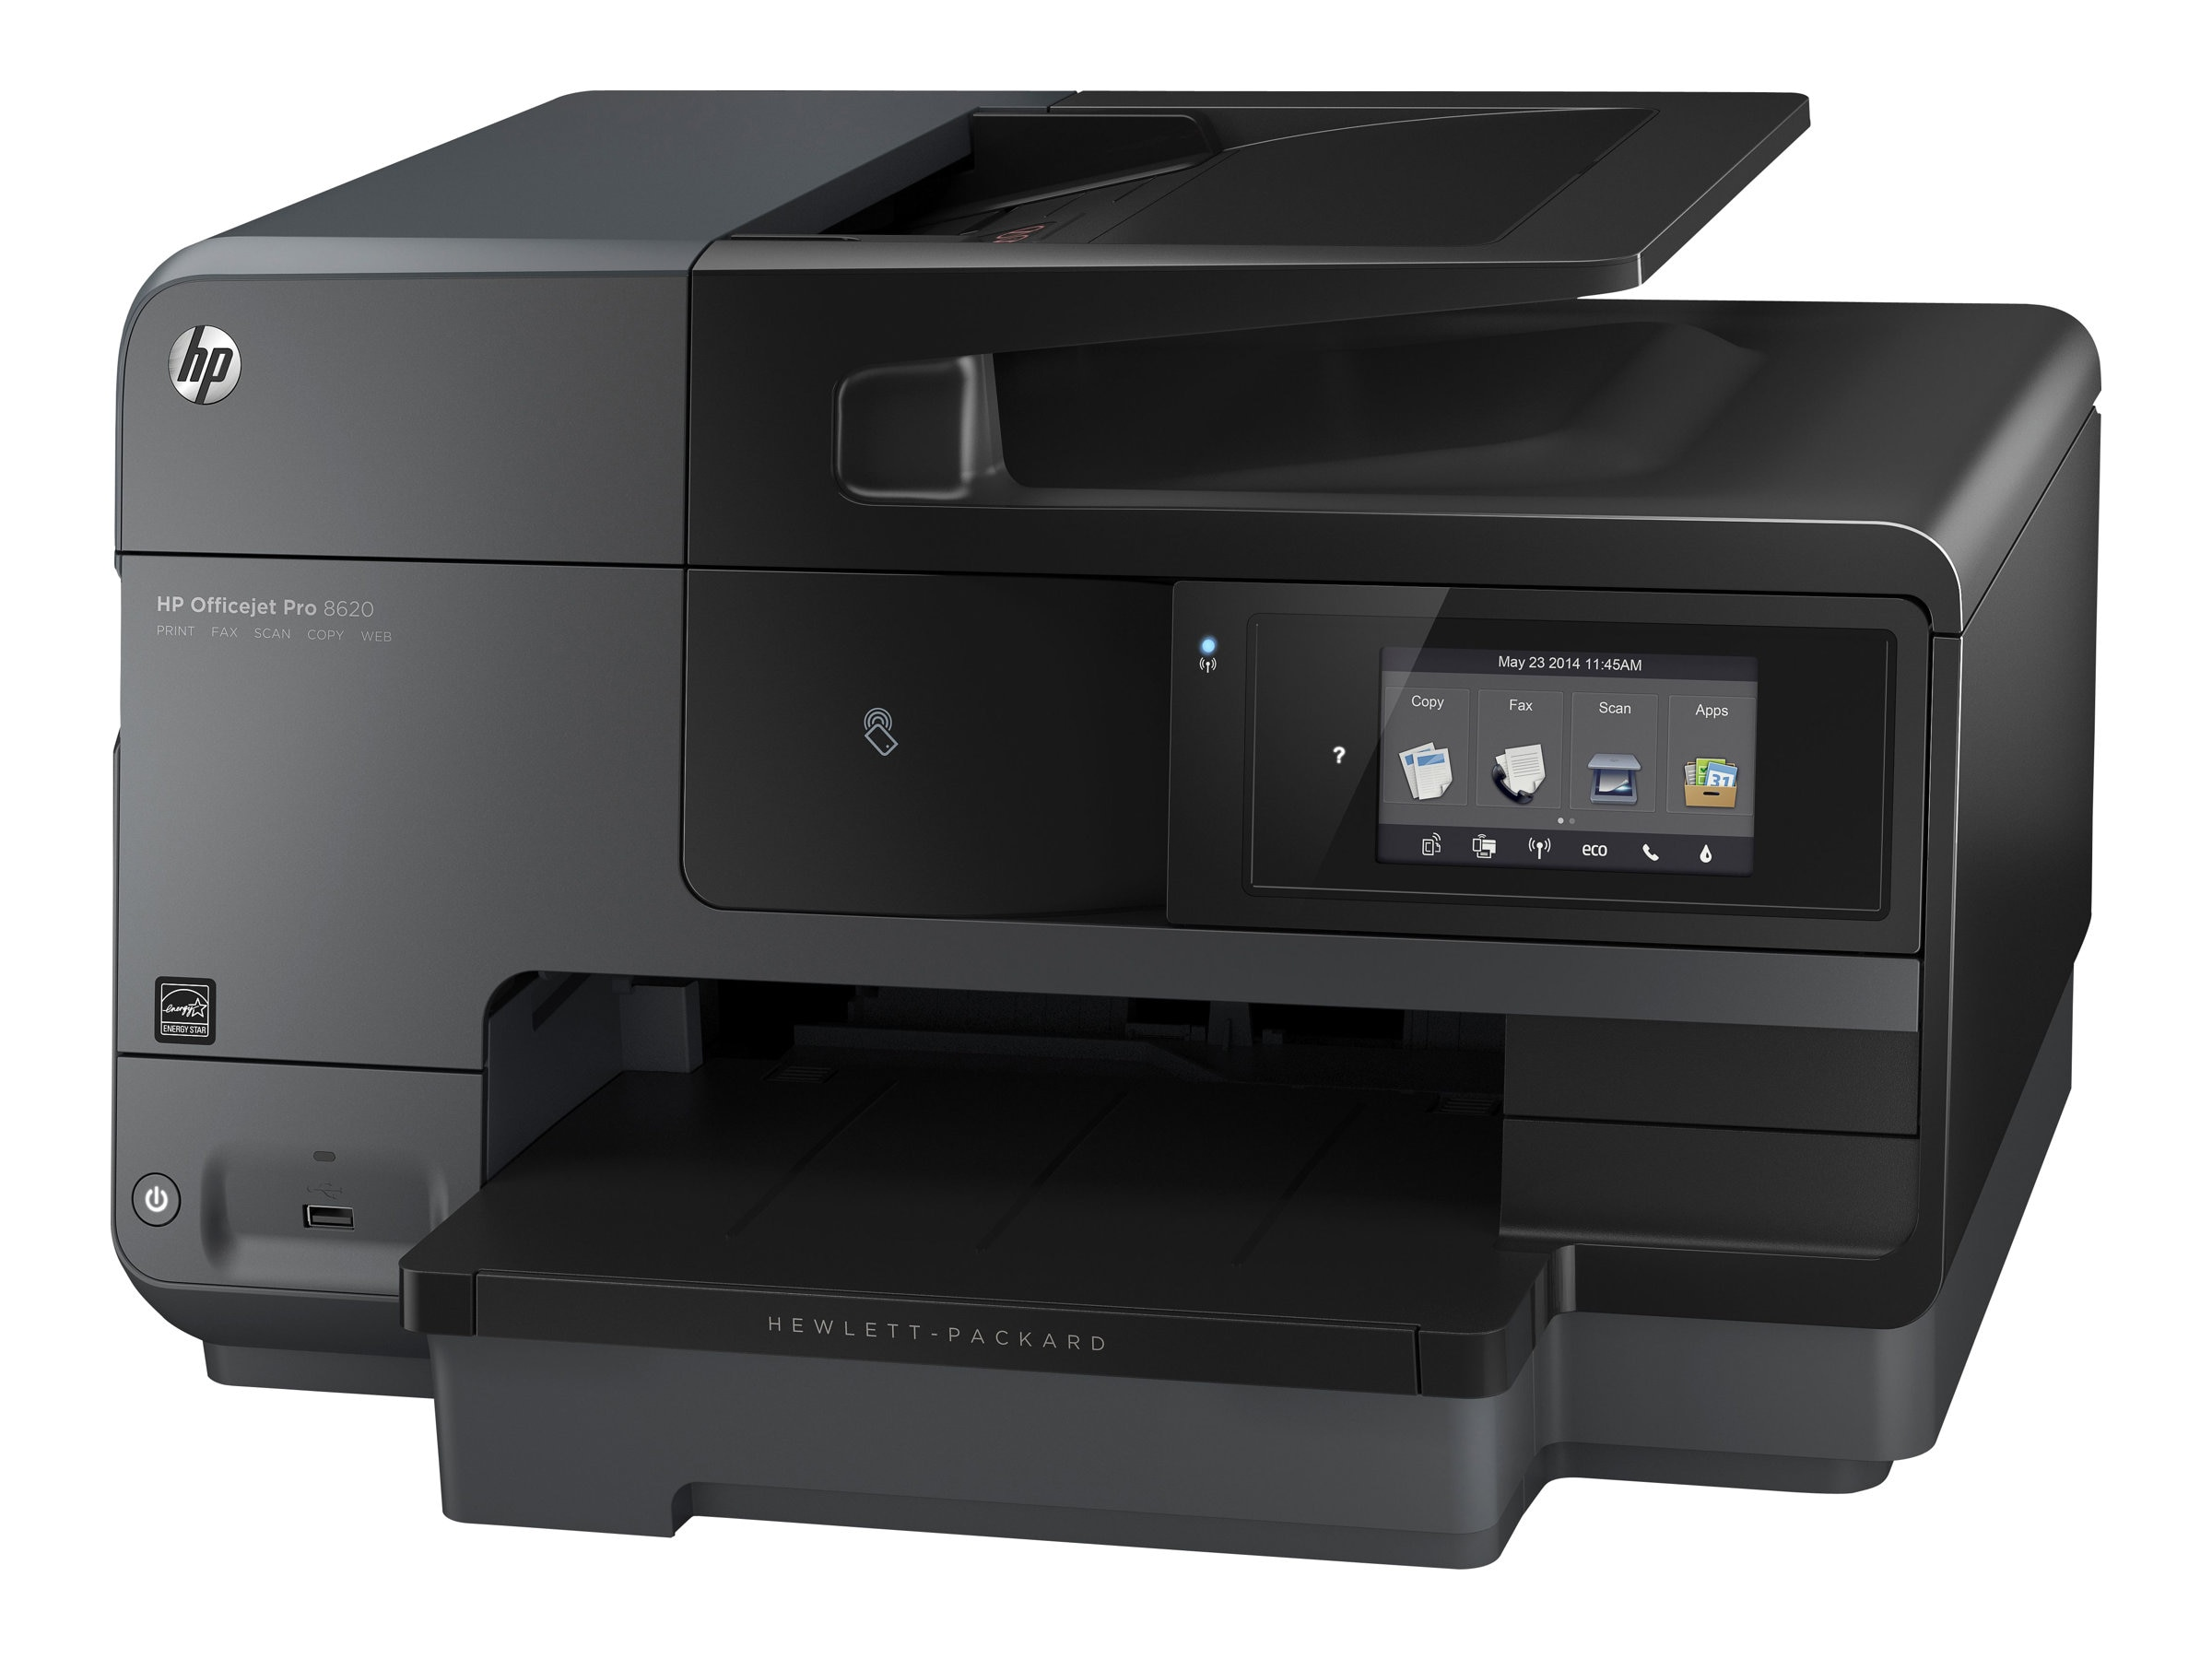 HP Officejet Pro 8620 e-All-in-One Printer ($299.95 - $100 Instant Rebate = $199.95 Expires 2 29 16), A7F65A#B1H, 16940881, MultiFunction - Ink-Jet